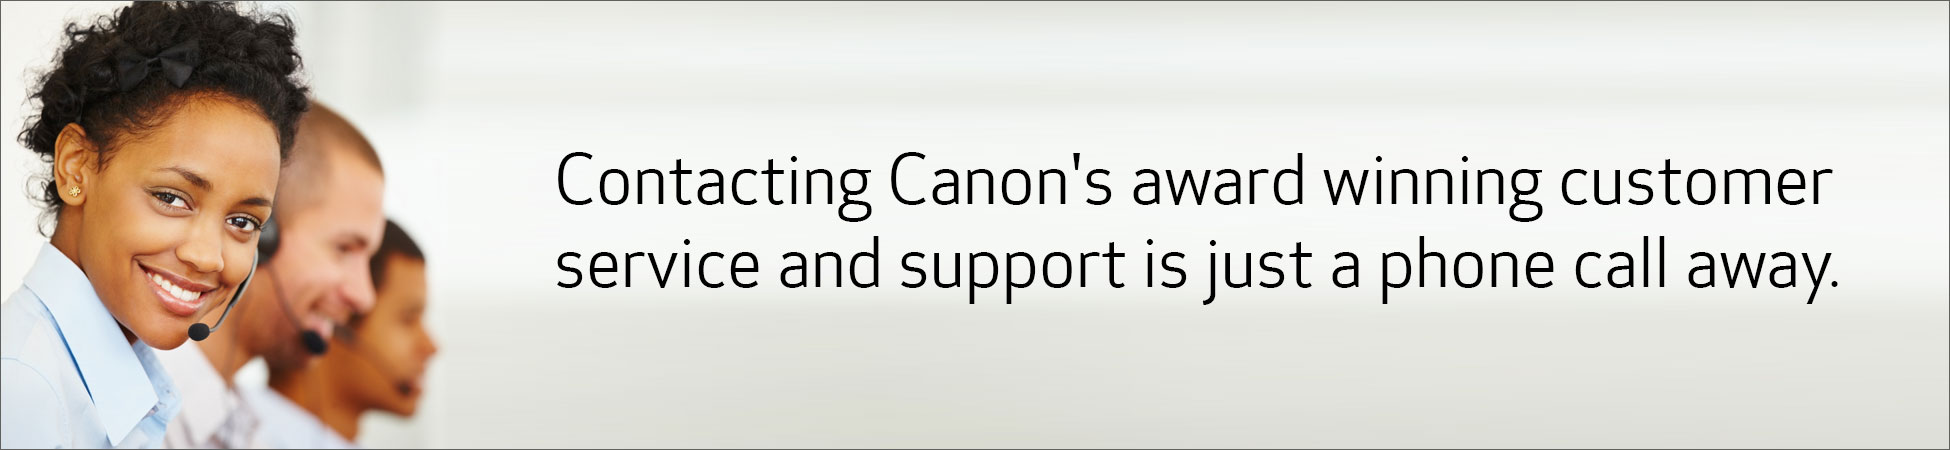 Contacting Canon's award winning customer service and support is just a phone call away.